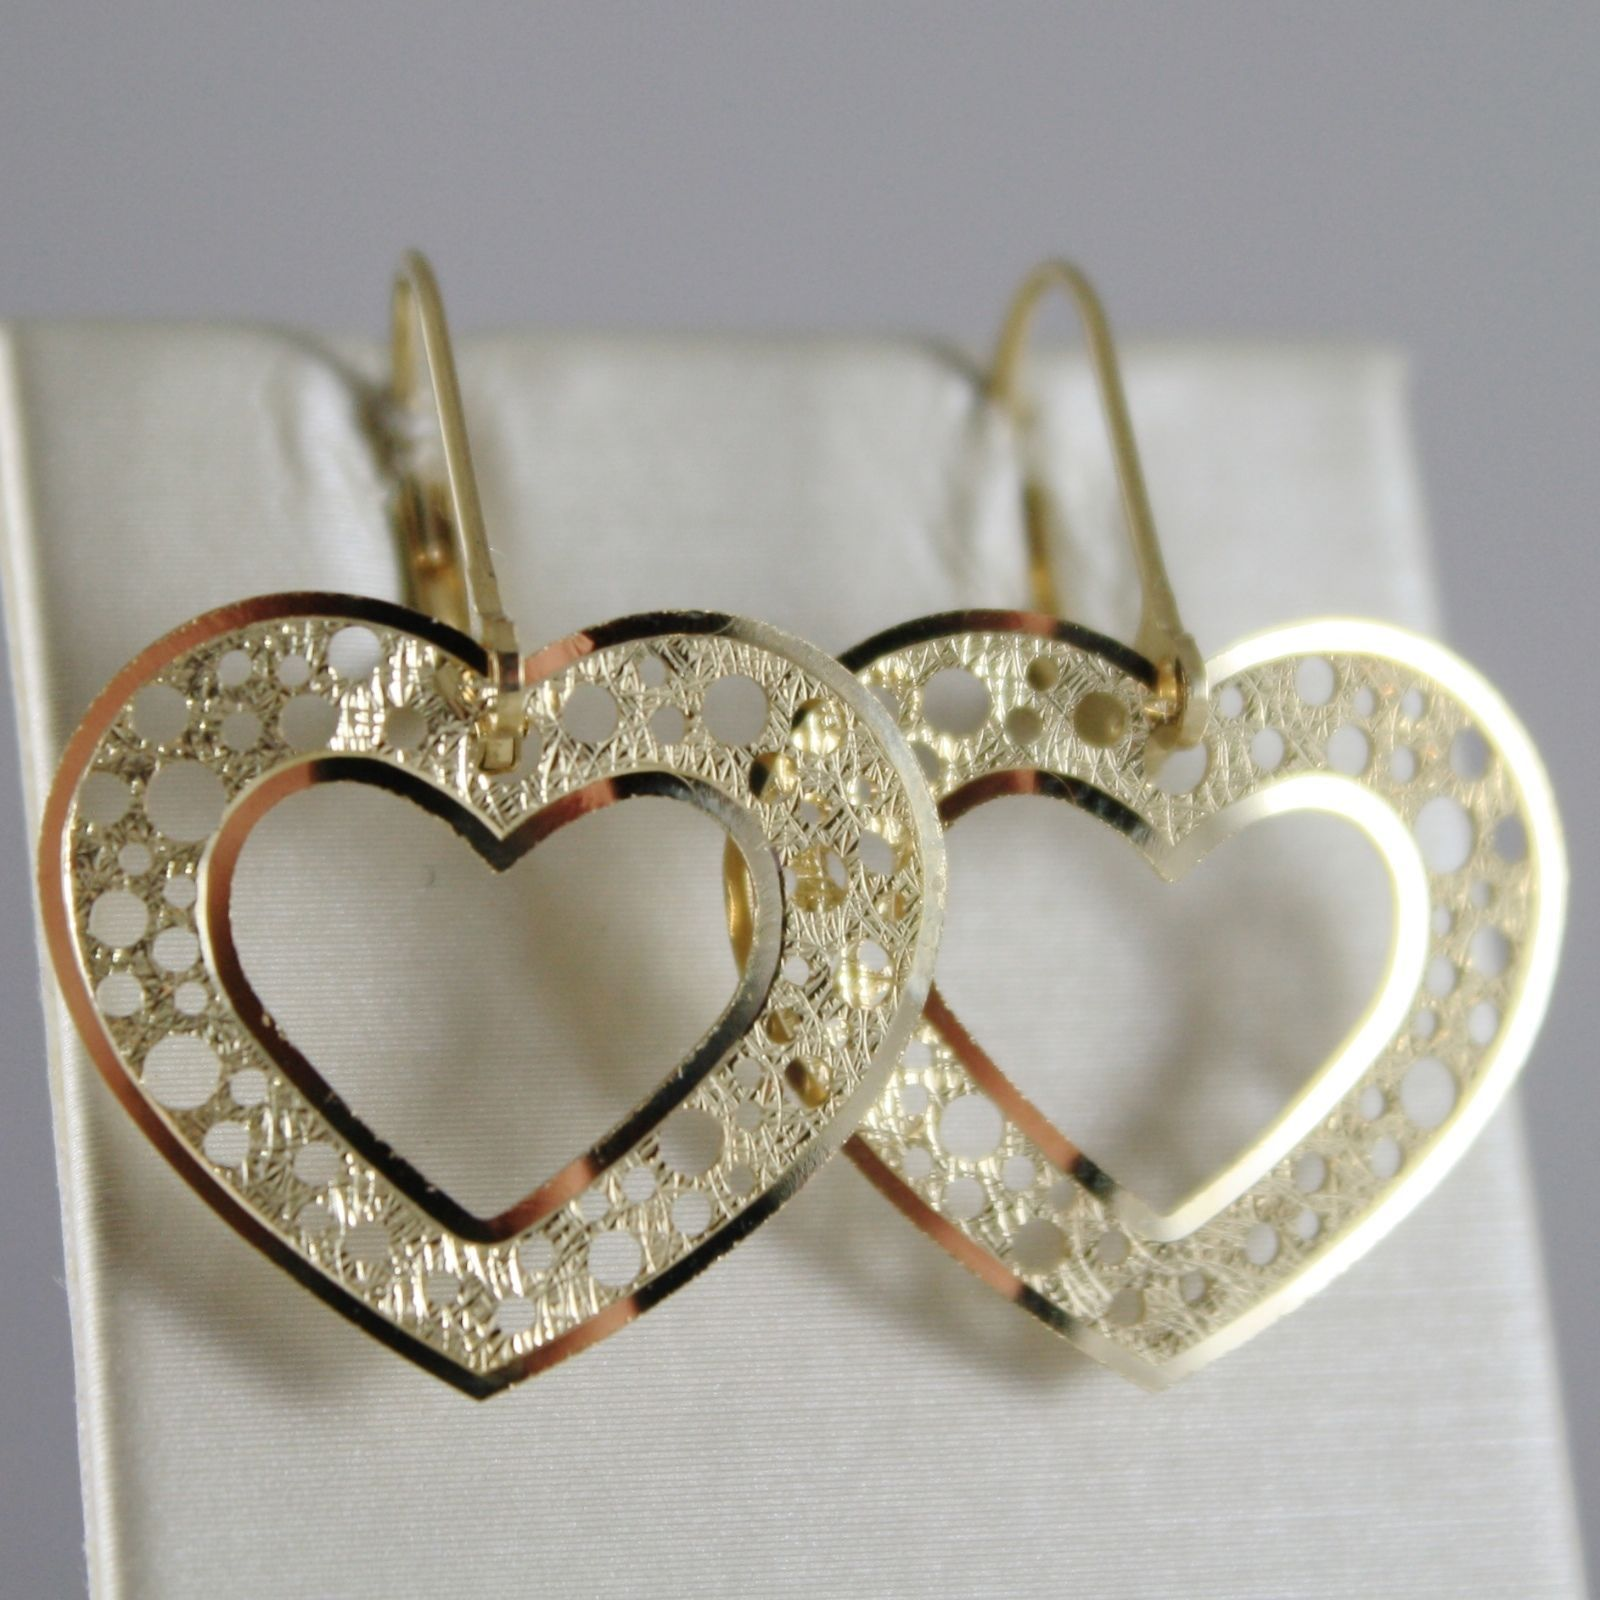 SOLID 18K YELLOW GOLD PENDANT HEART EARRINGS FINELY WORKED, BRIGHT MADE IN ITALY